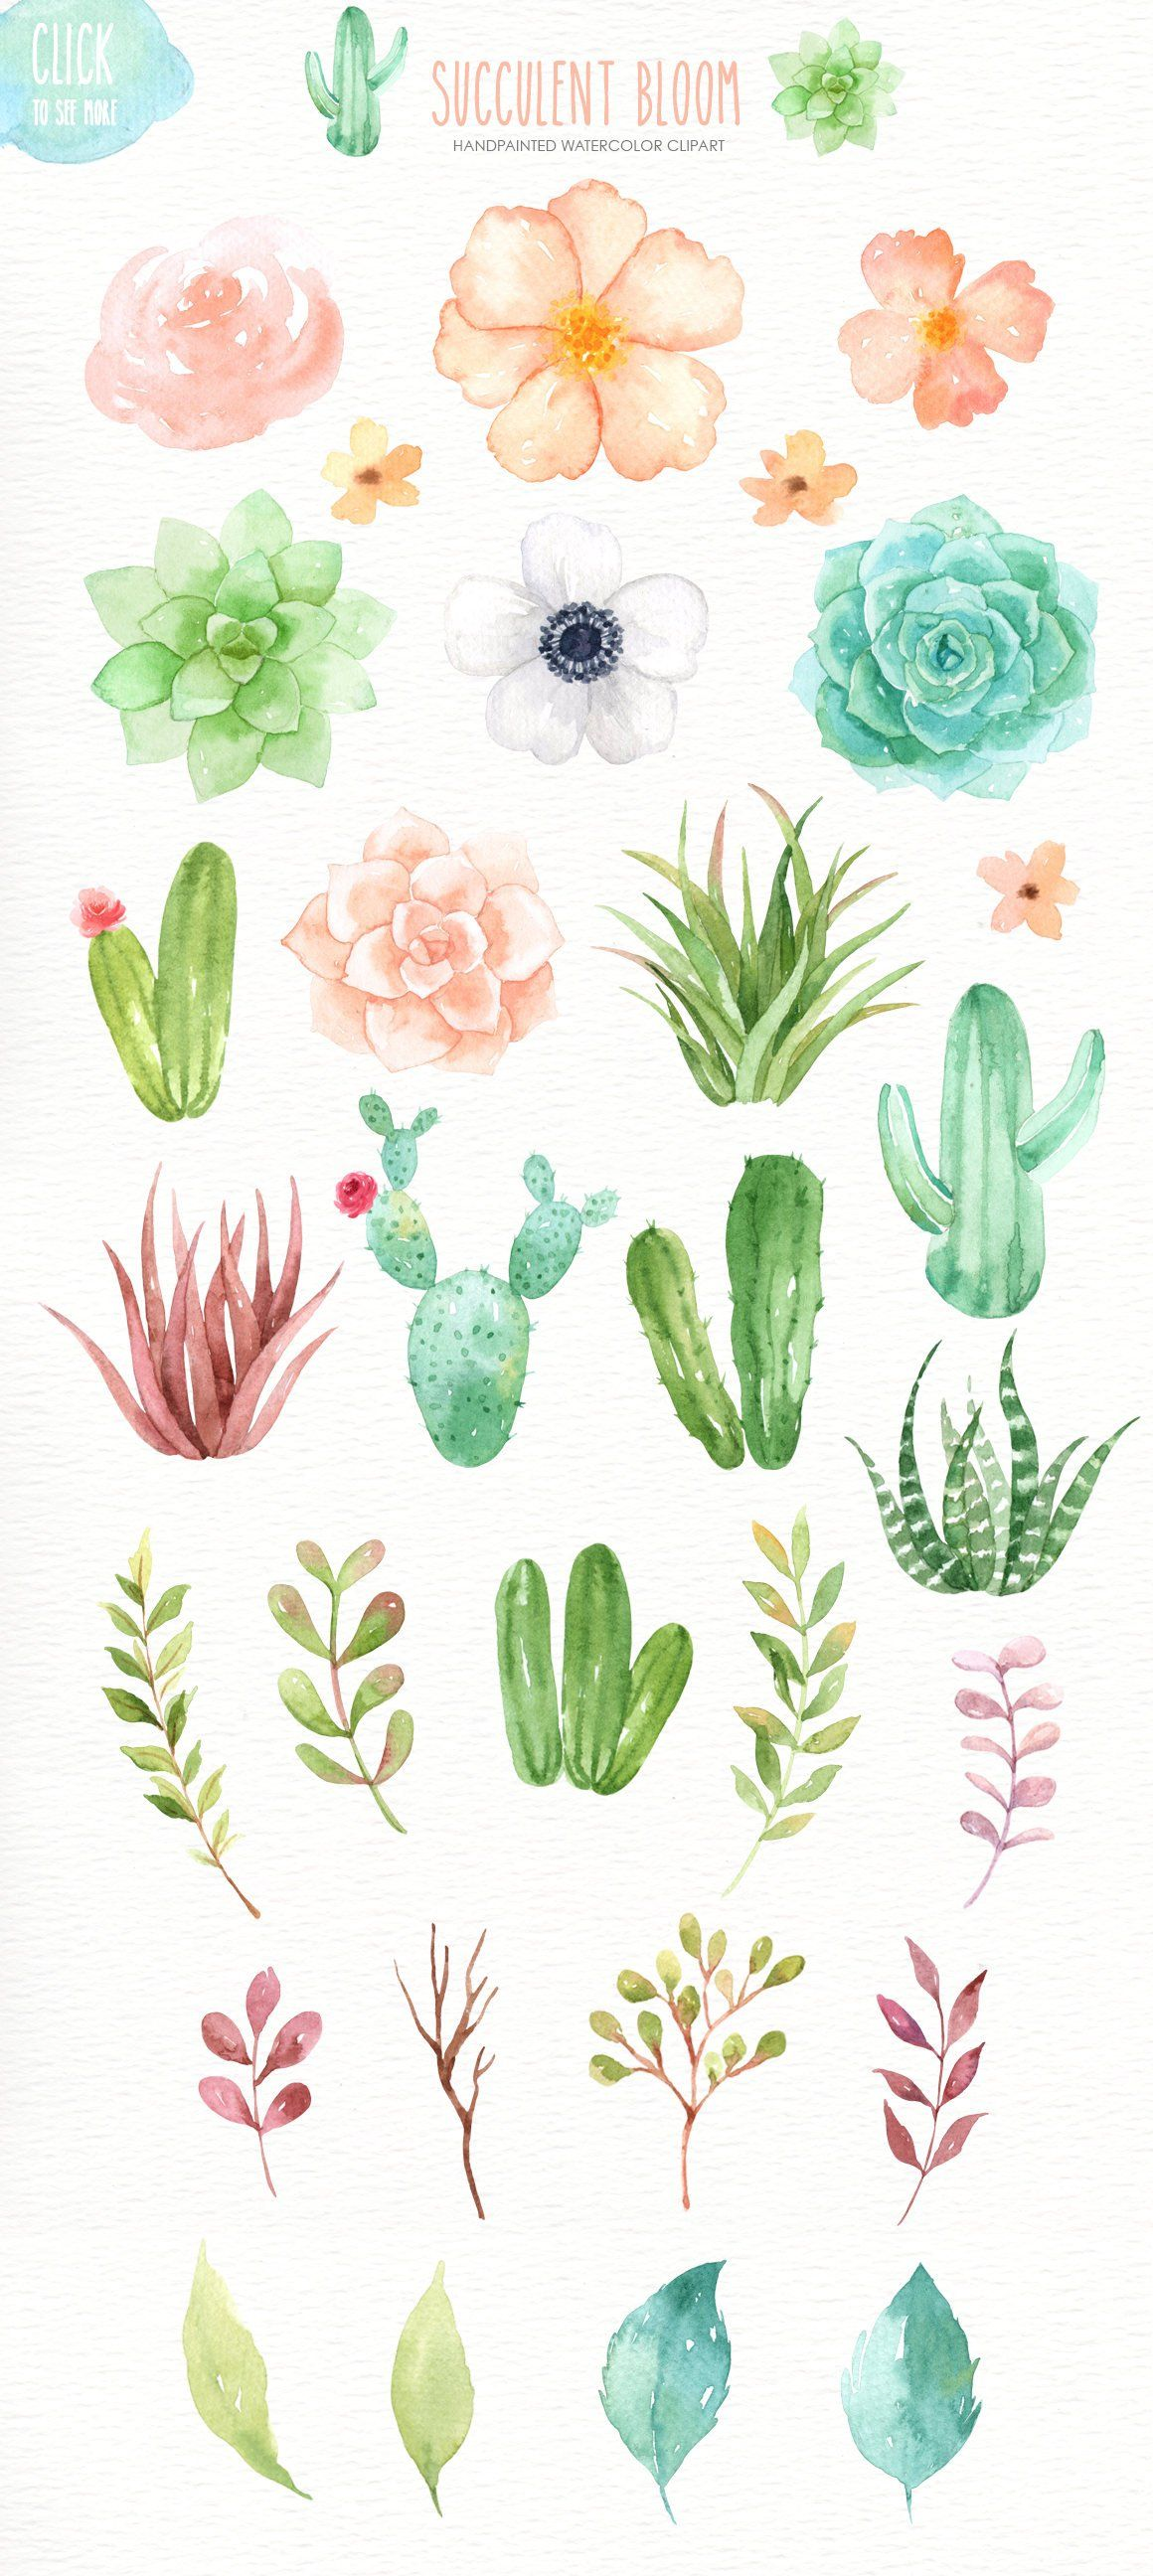 Succulent Bloom Watercolor Cliparts, Cactus, Flower Clipart.